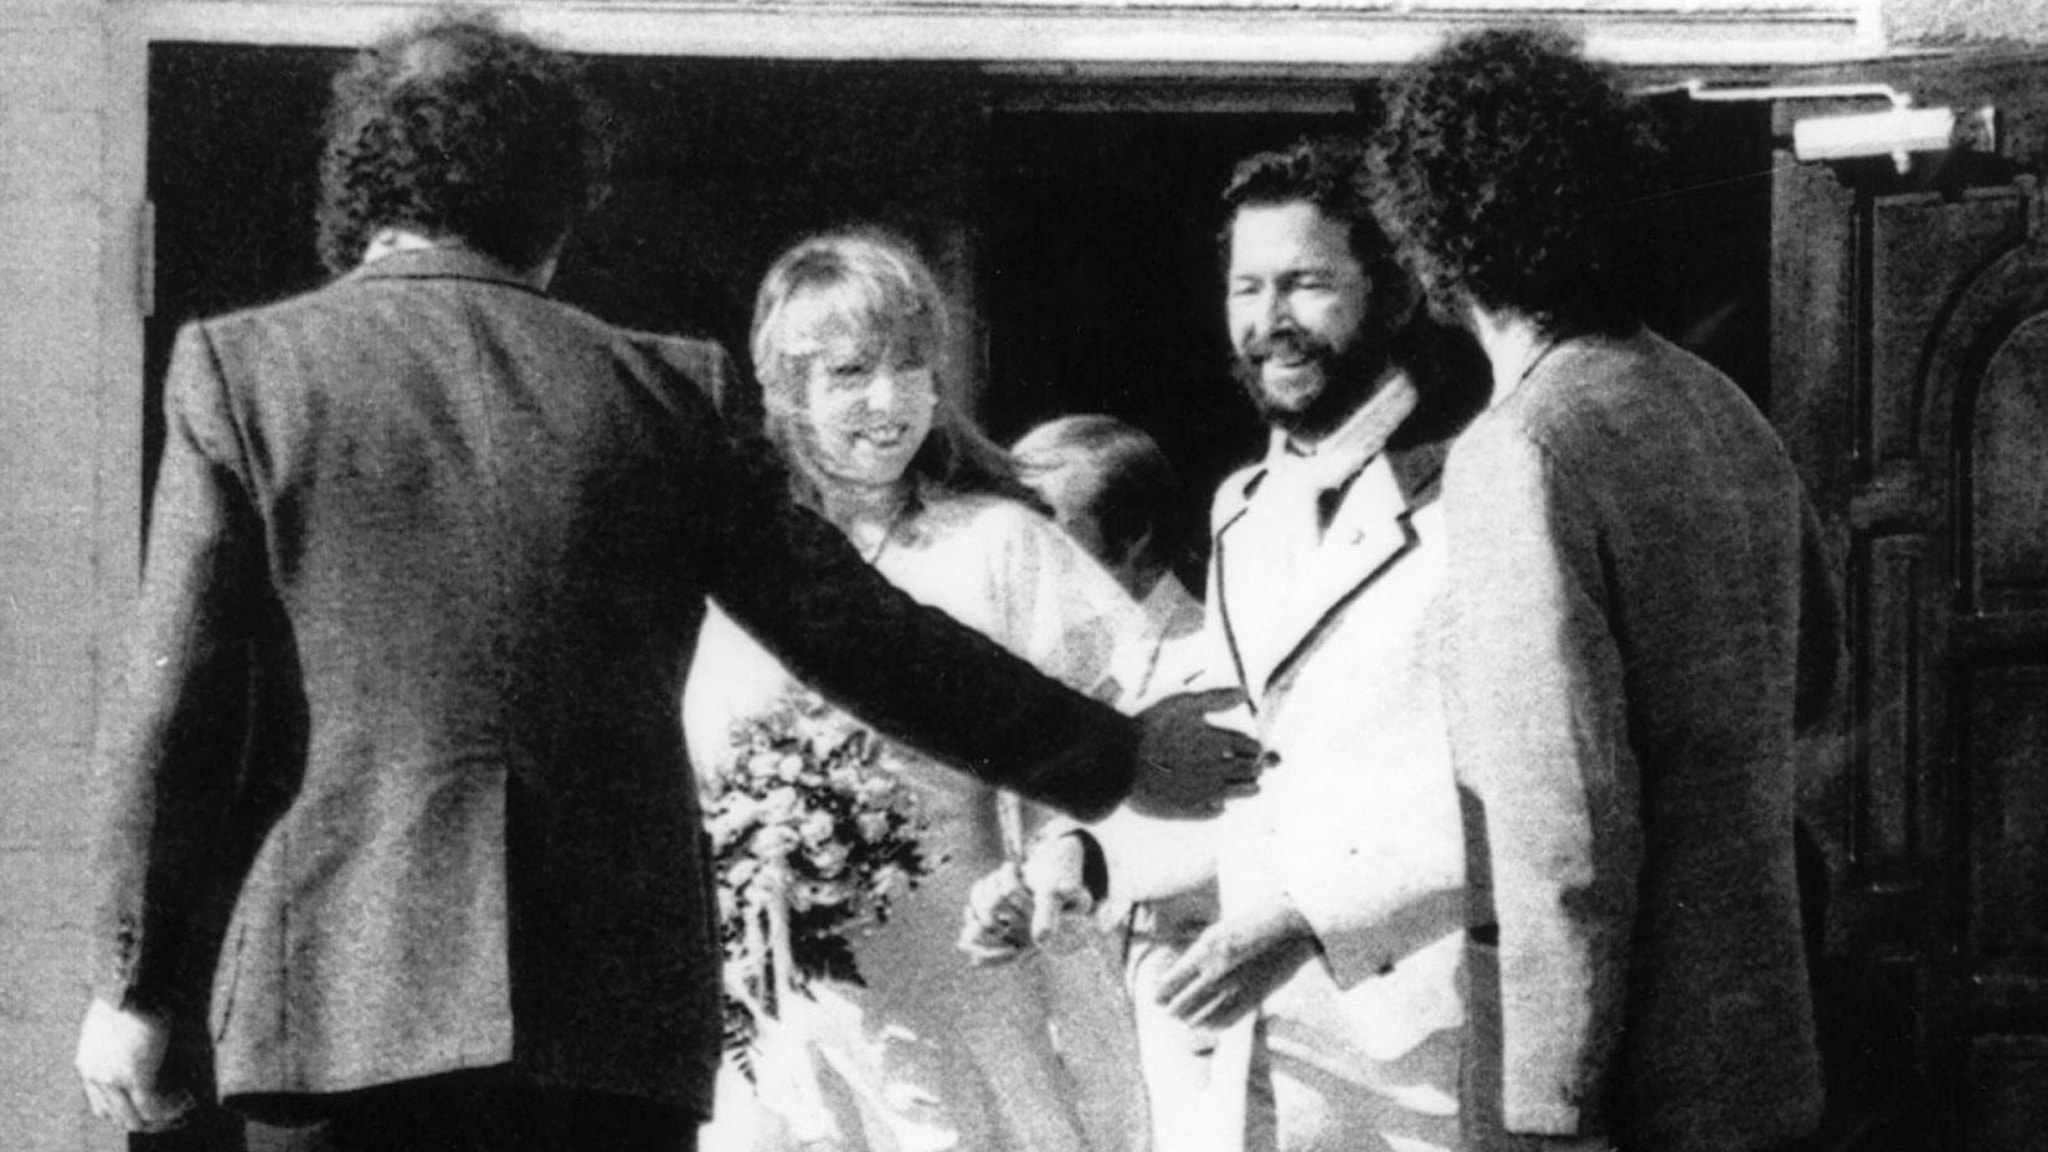 Eric Clapton gifter sig med Pattie Boyd.